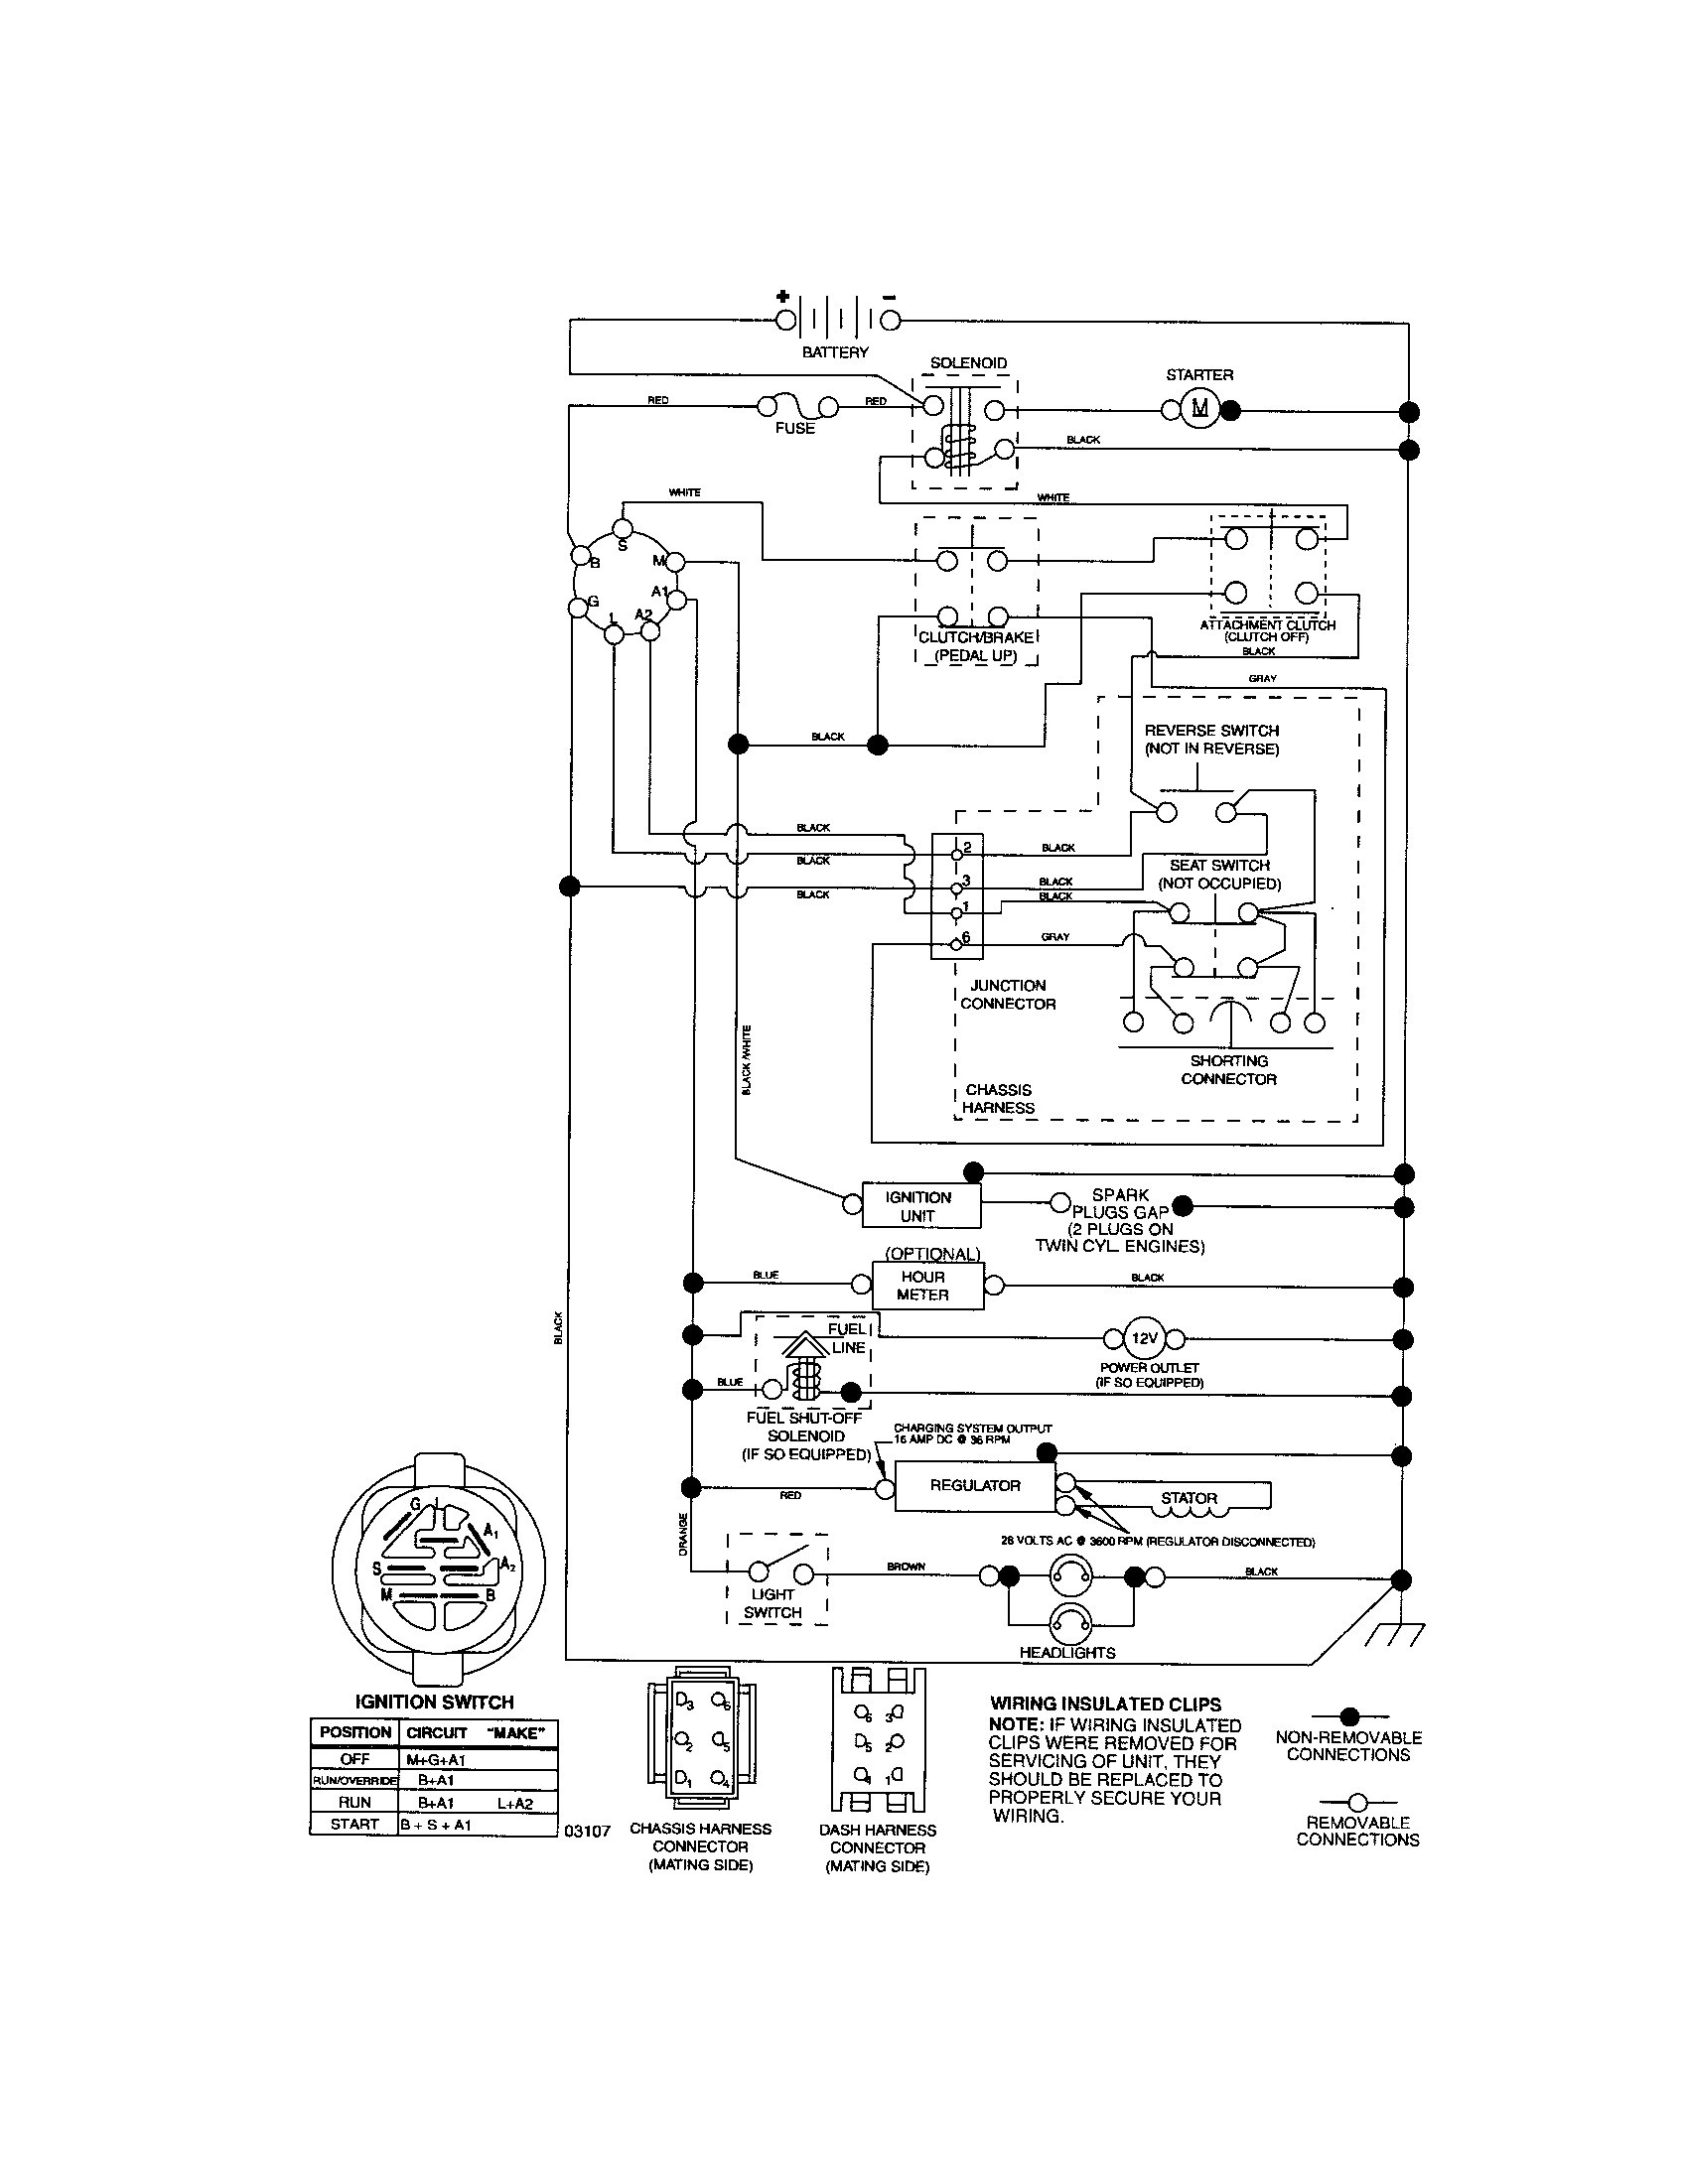 craftsman pto switch wiring diagram Download-Craftsman Riding Mower Electrical Diagram Wiring And Lawn Ignition Switch 3-q